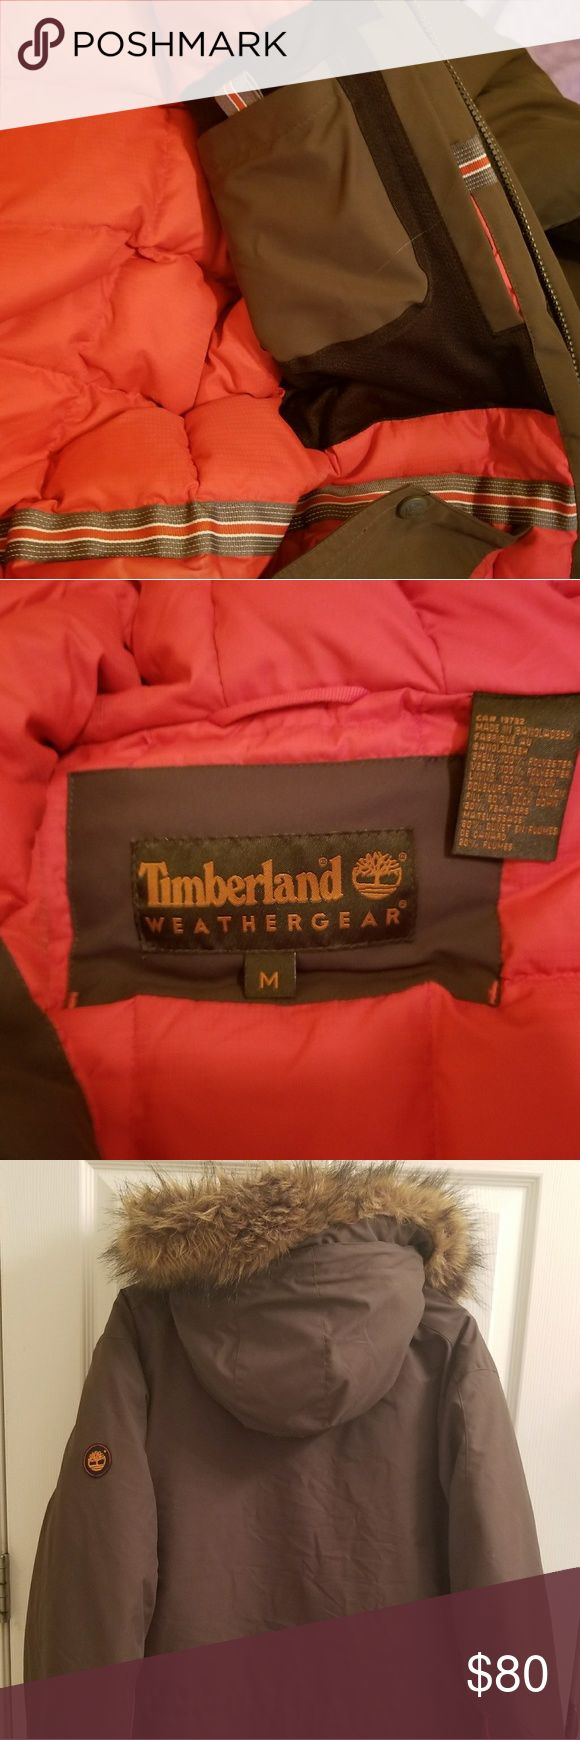 Timberland parka Mens med. Perfect condition slight imperfection on brim of hood fur not that noticeable. Worn twice smoke and pet free home. No reasonable offer rejected! Timberland Jackets & Coats Trench Coats